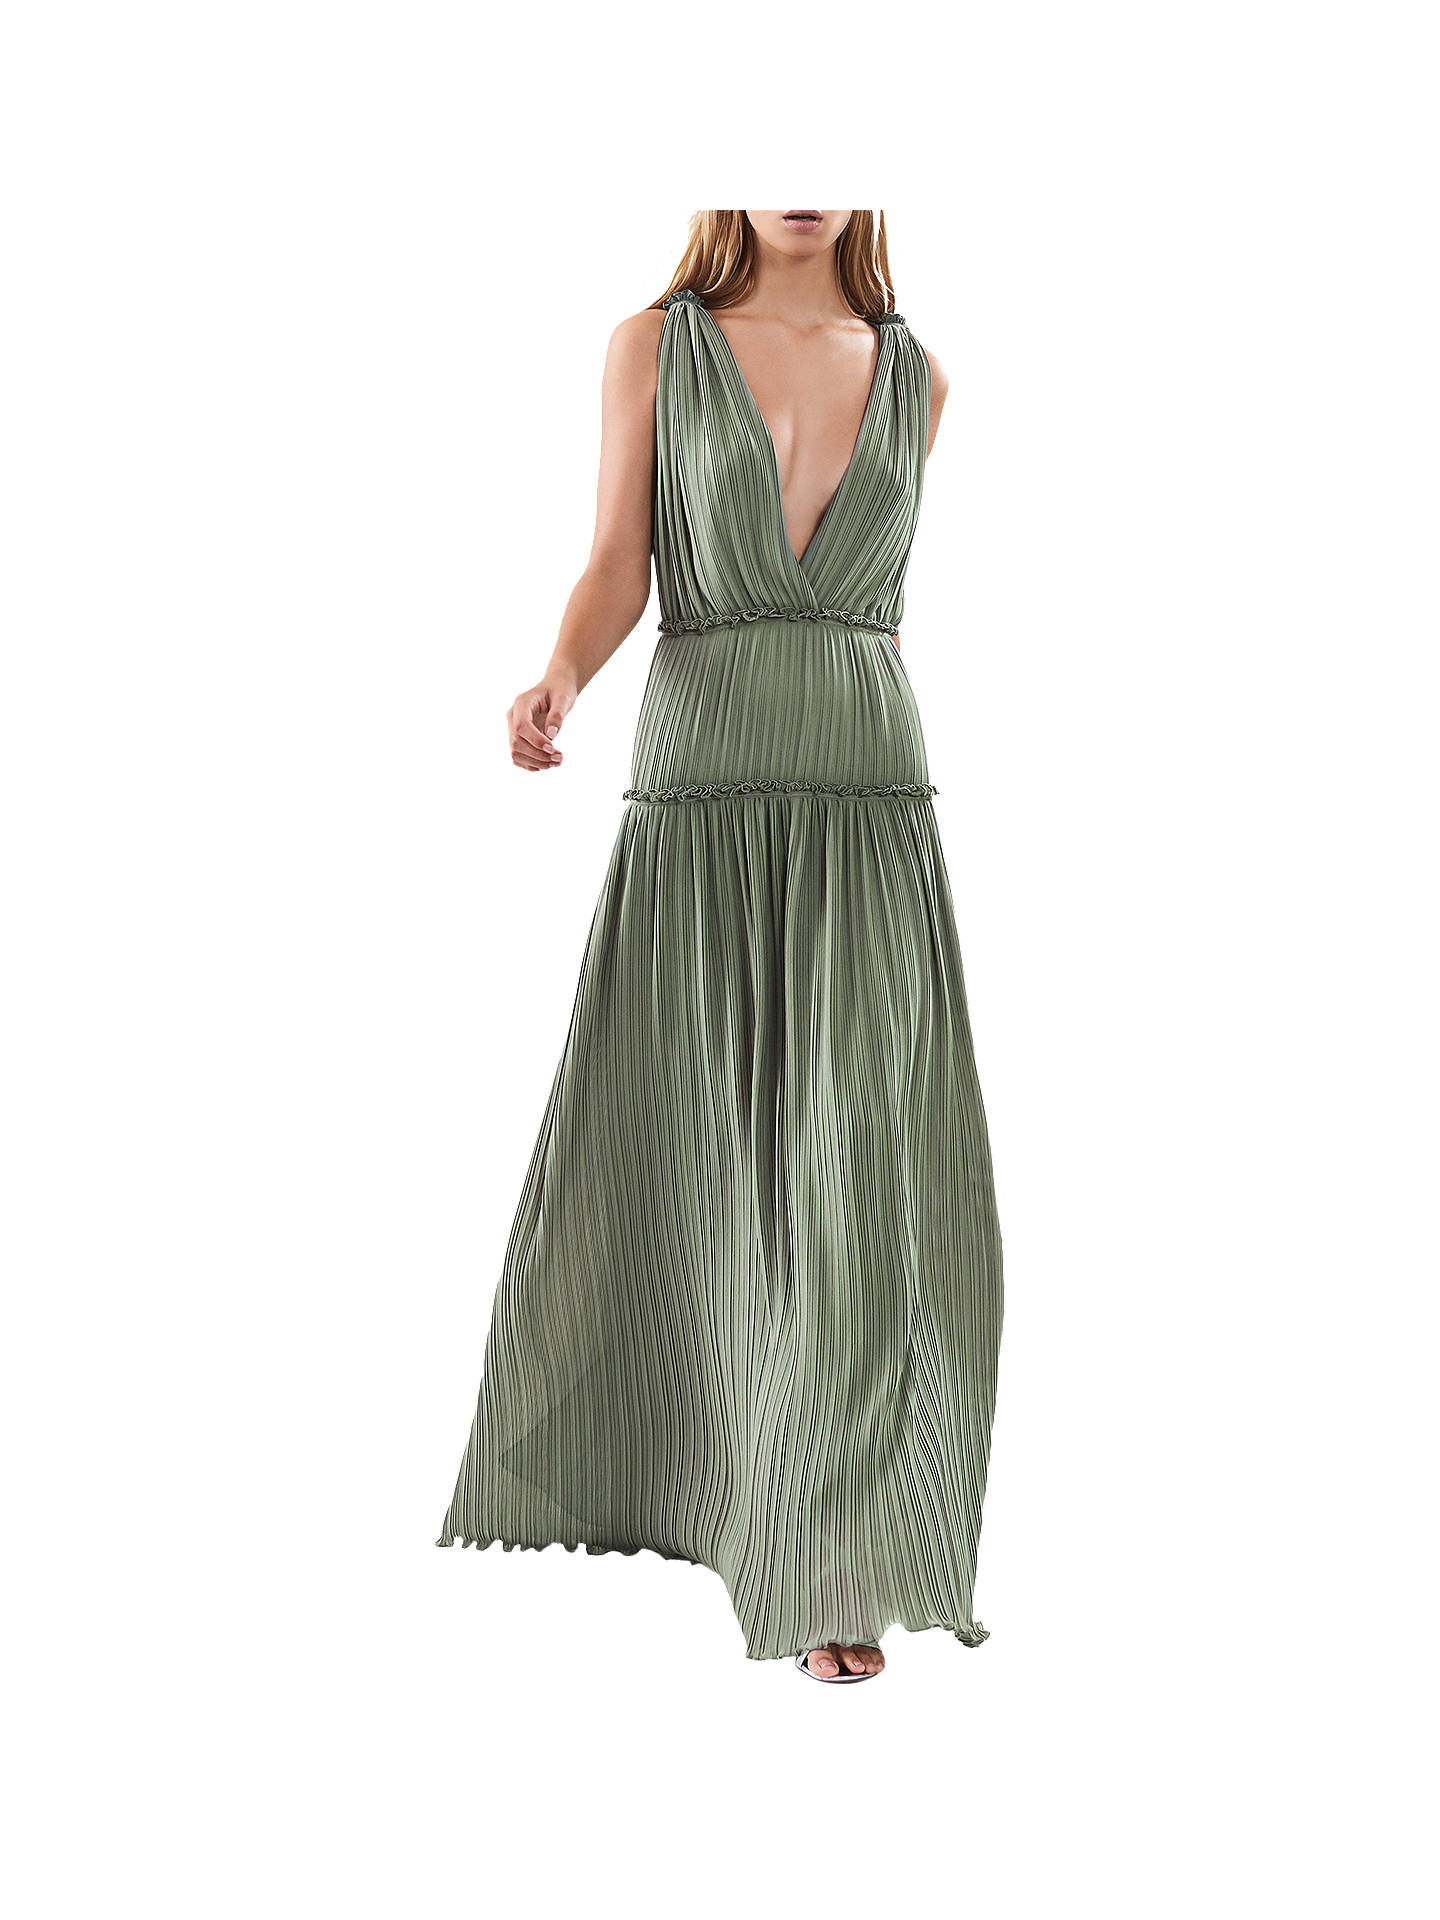 8f50eea276 Buy Reiss Gigi Pleat Maxi Dress, Sage Green, 4 Online at johnlewis.com ...